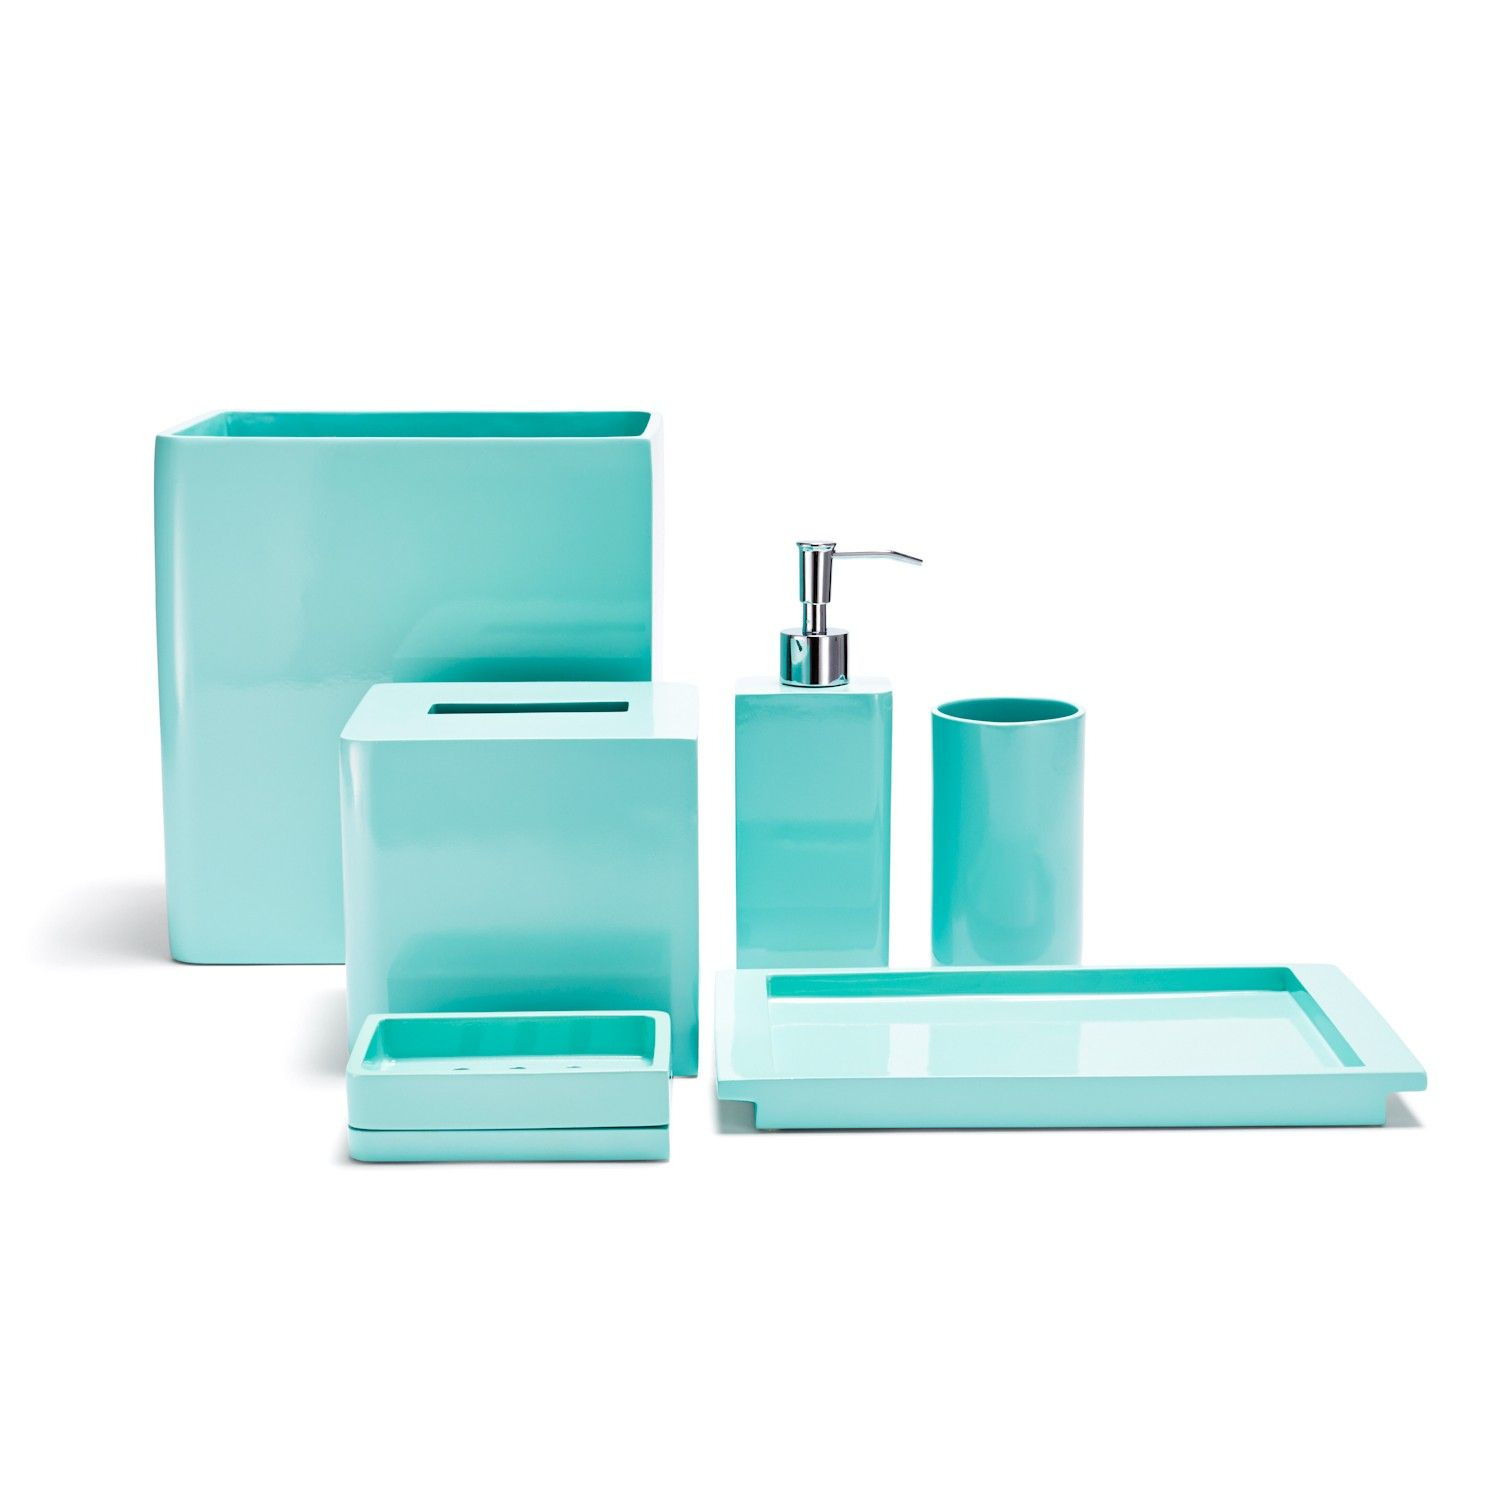 Bathroom Accessories In Blue Ideas Pinterest Turquoise - Light blue bathroom accessories for bathroom decor ideas